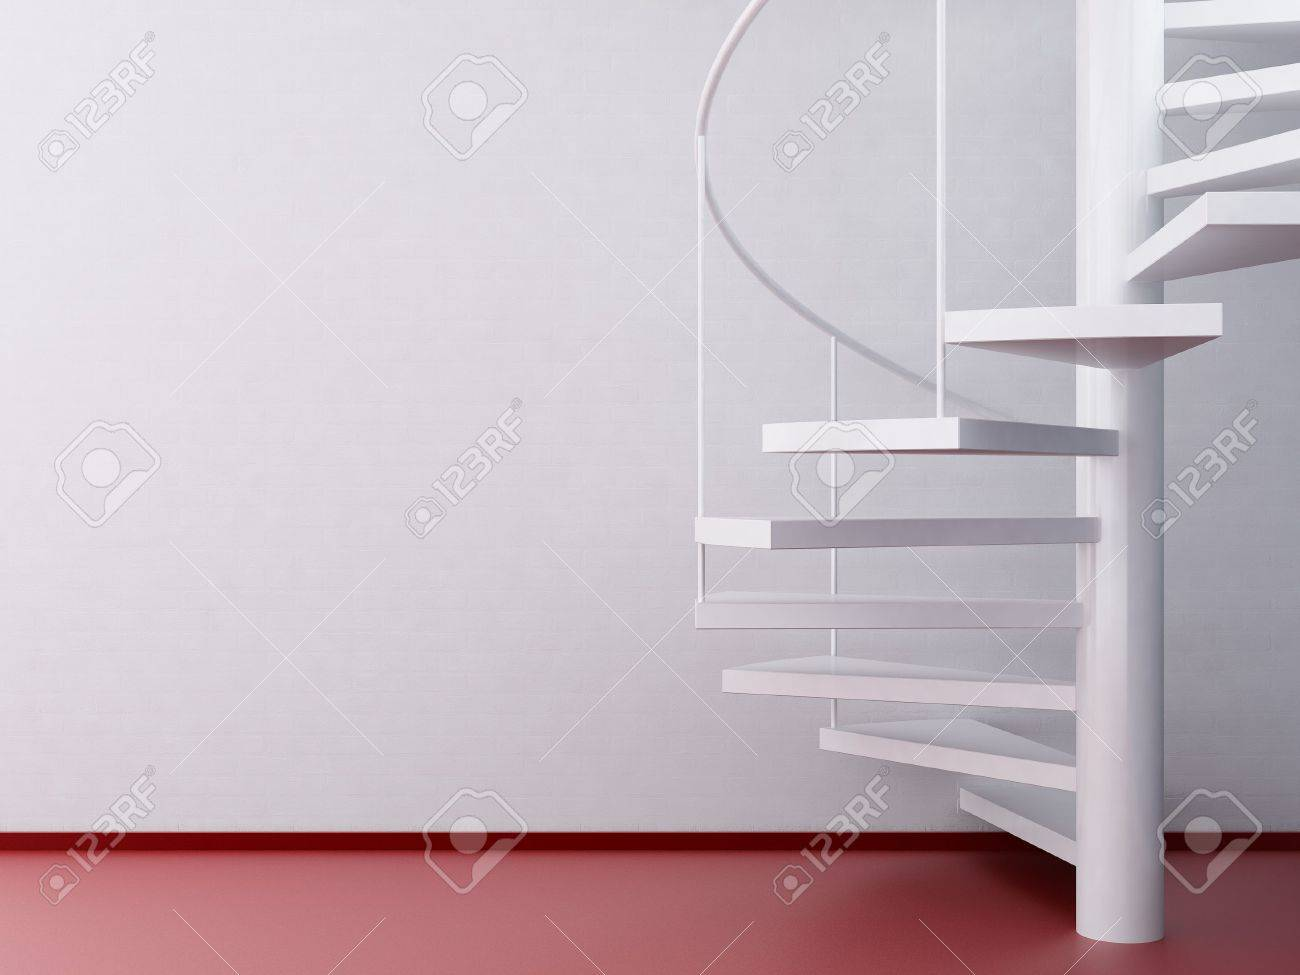 spiral staircase and red floor - 5958423